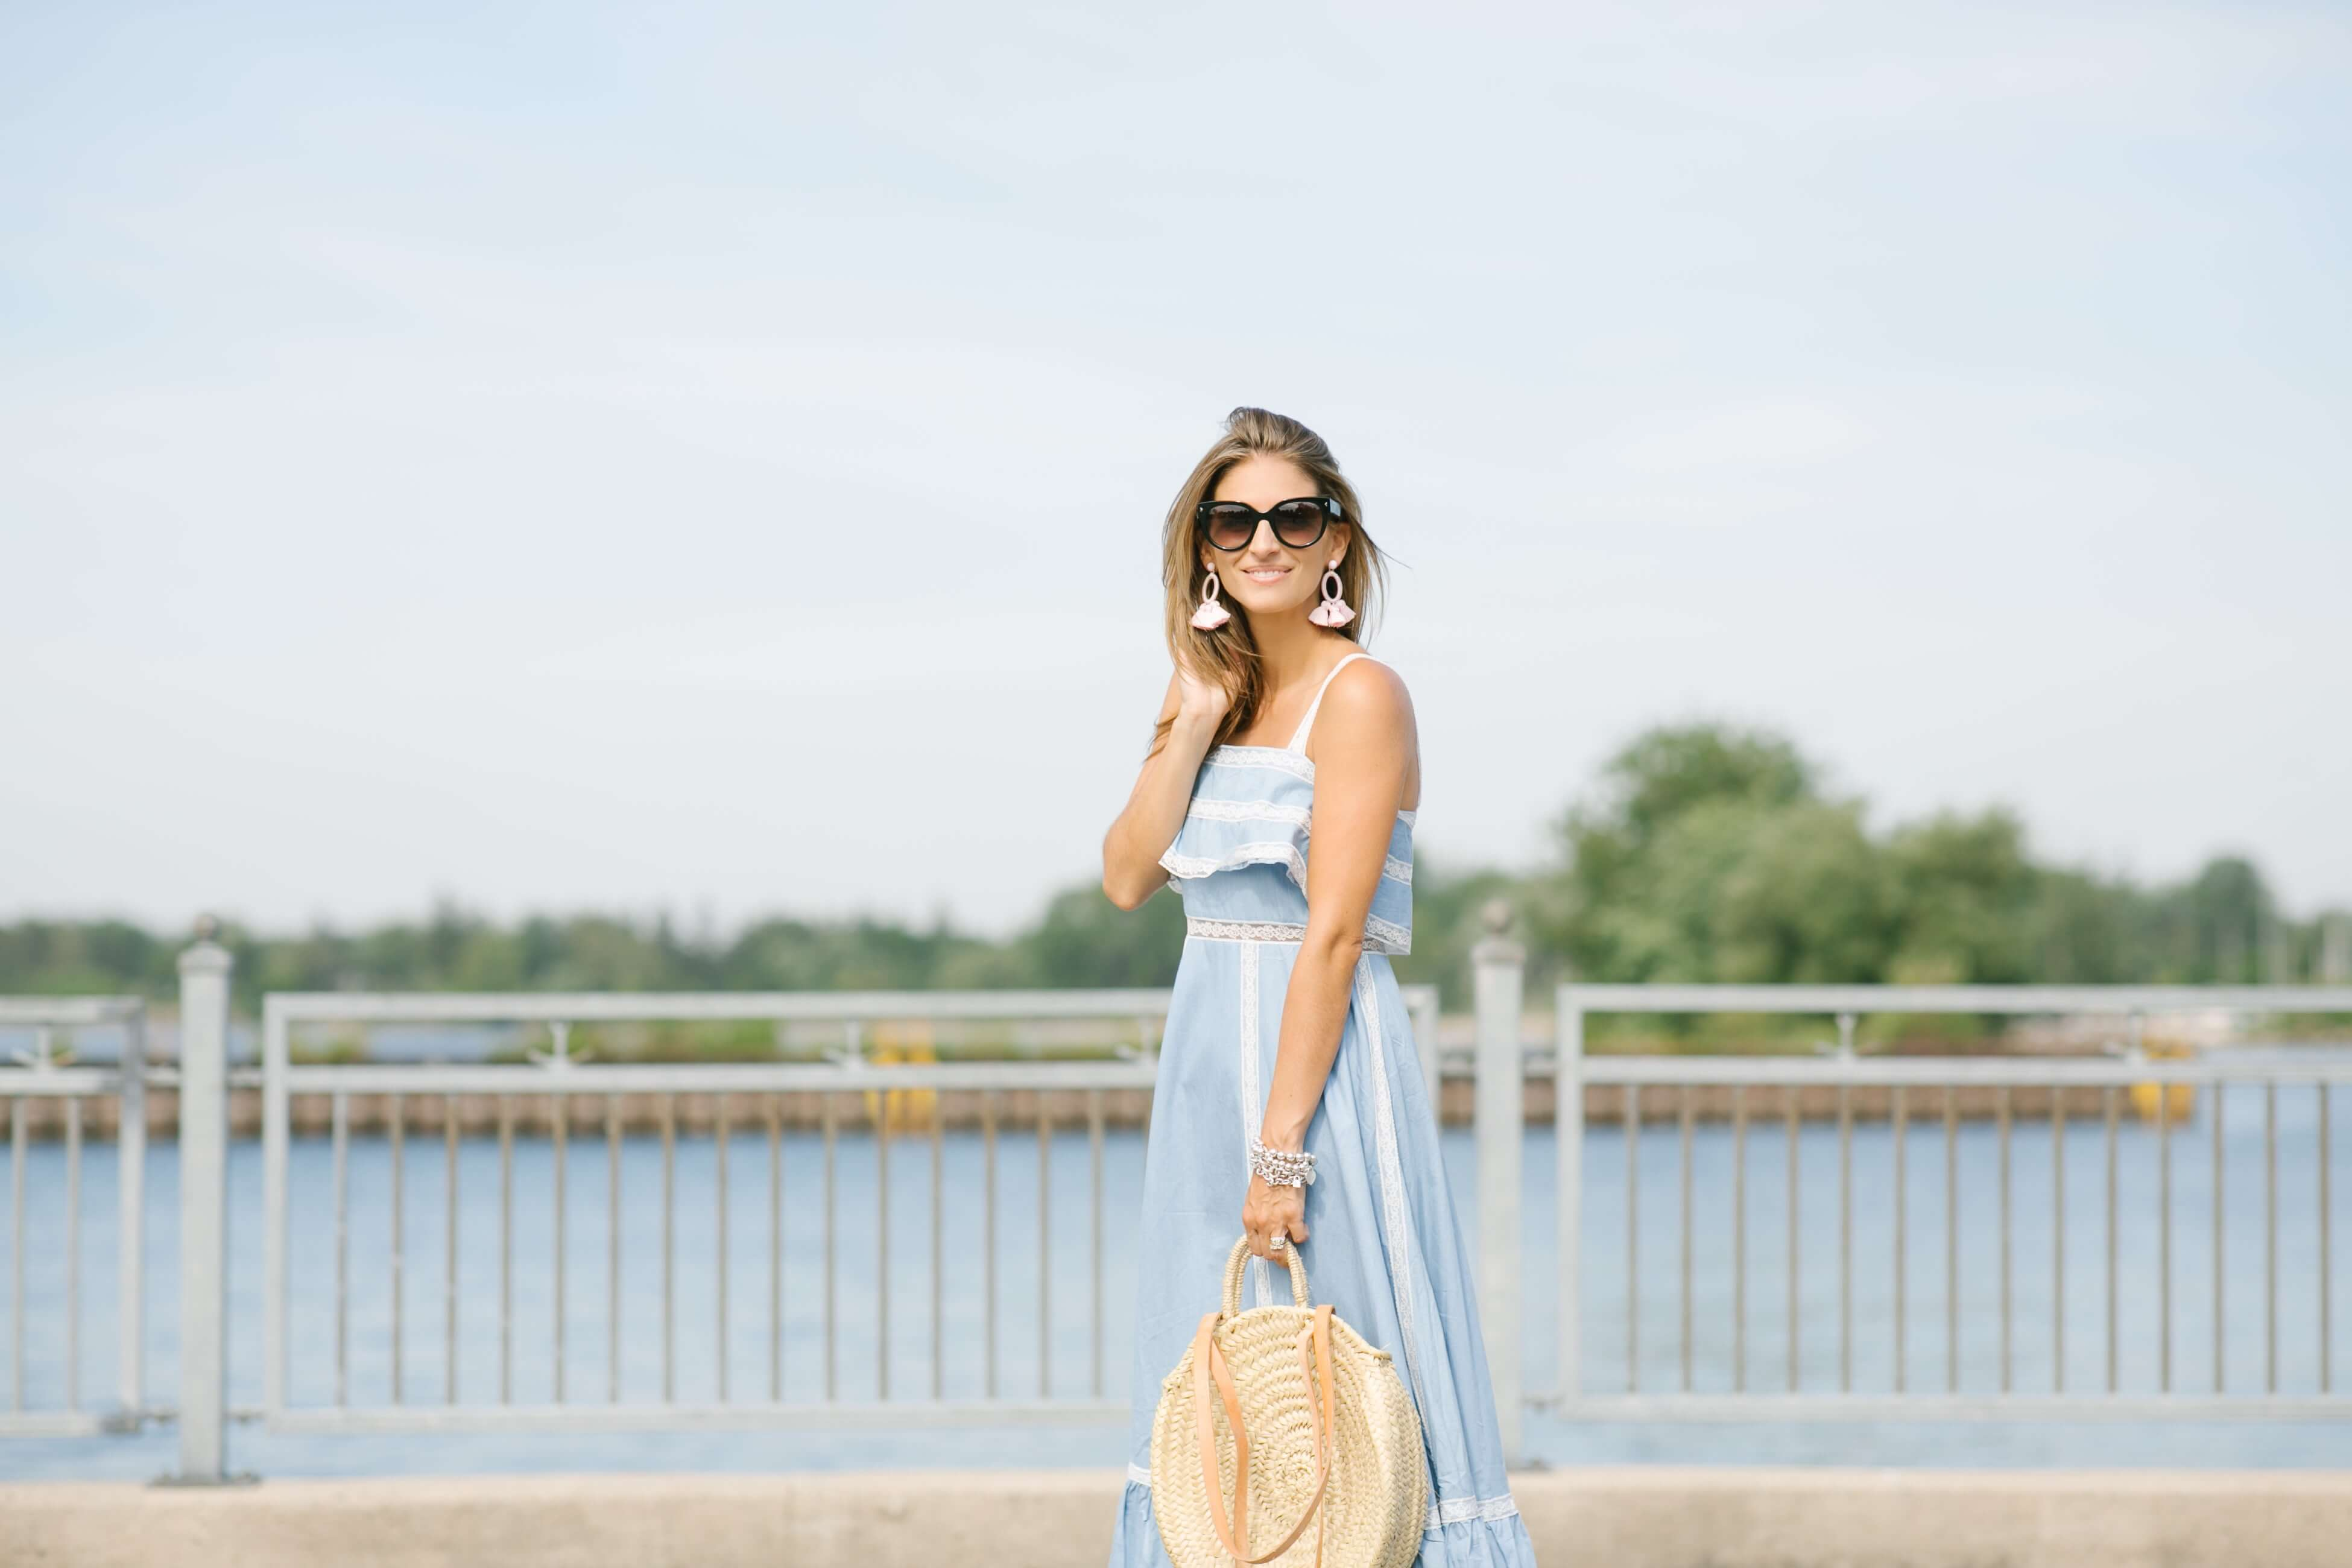 Summer wedding outfit ideas - ruffle maxi dress, round straw bag and espadrilles Mandy Furnis sparkleshinylove